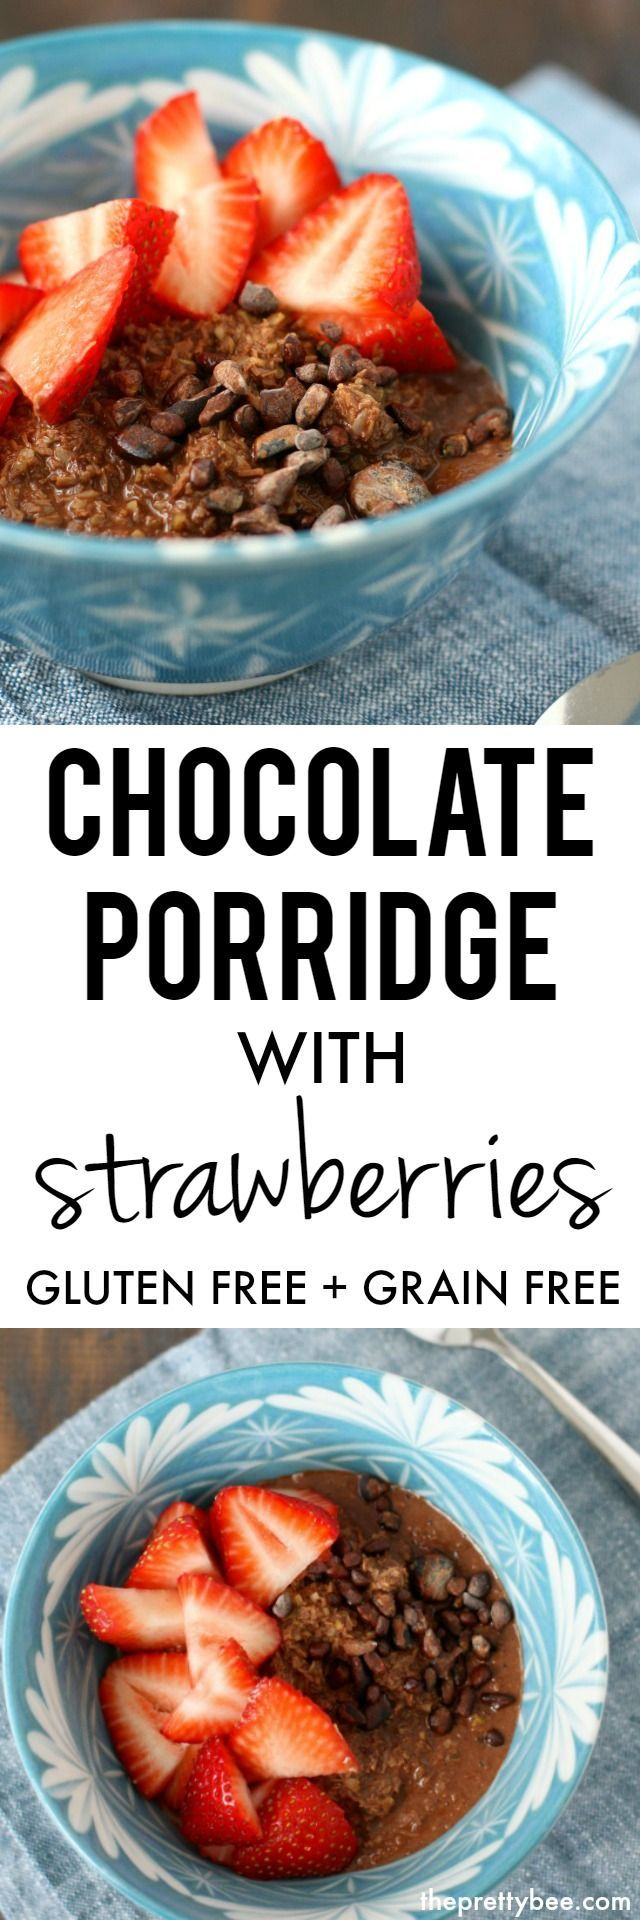 This gluten and grain free porridge is a delicious and healthy start to your day!